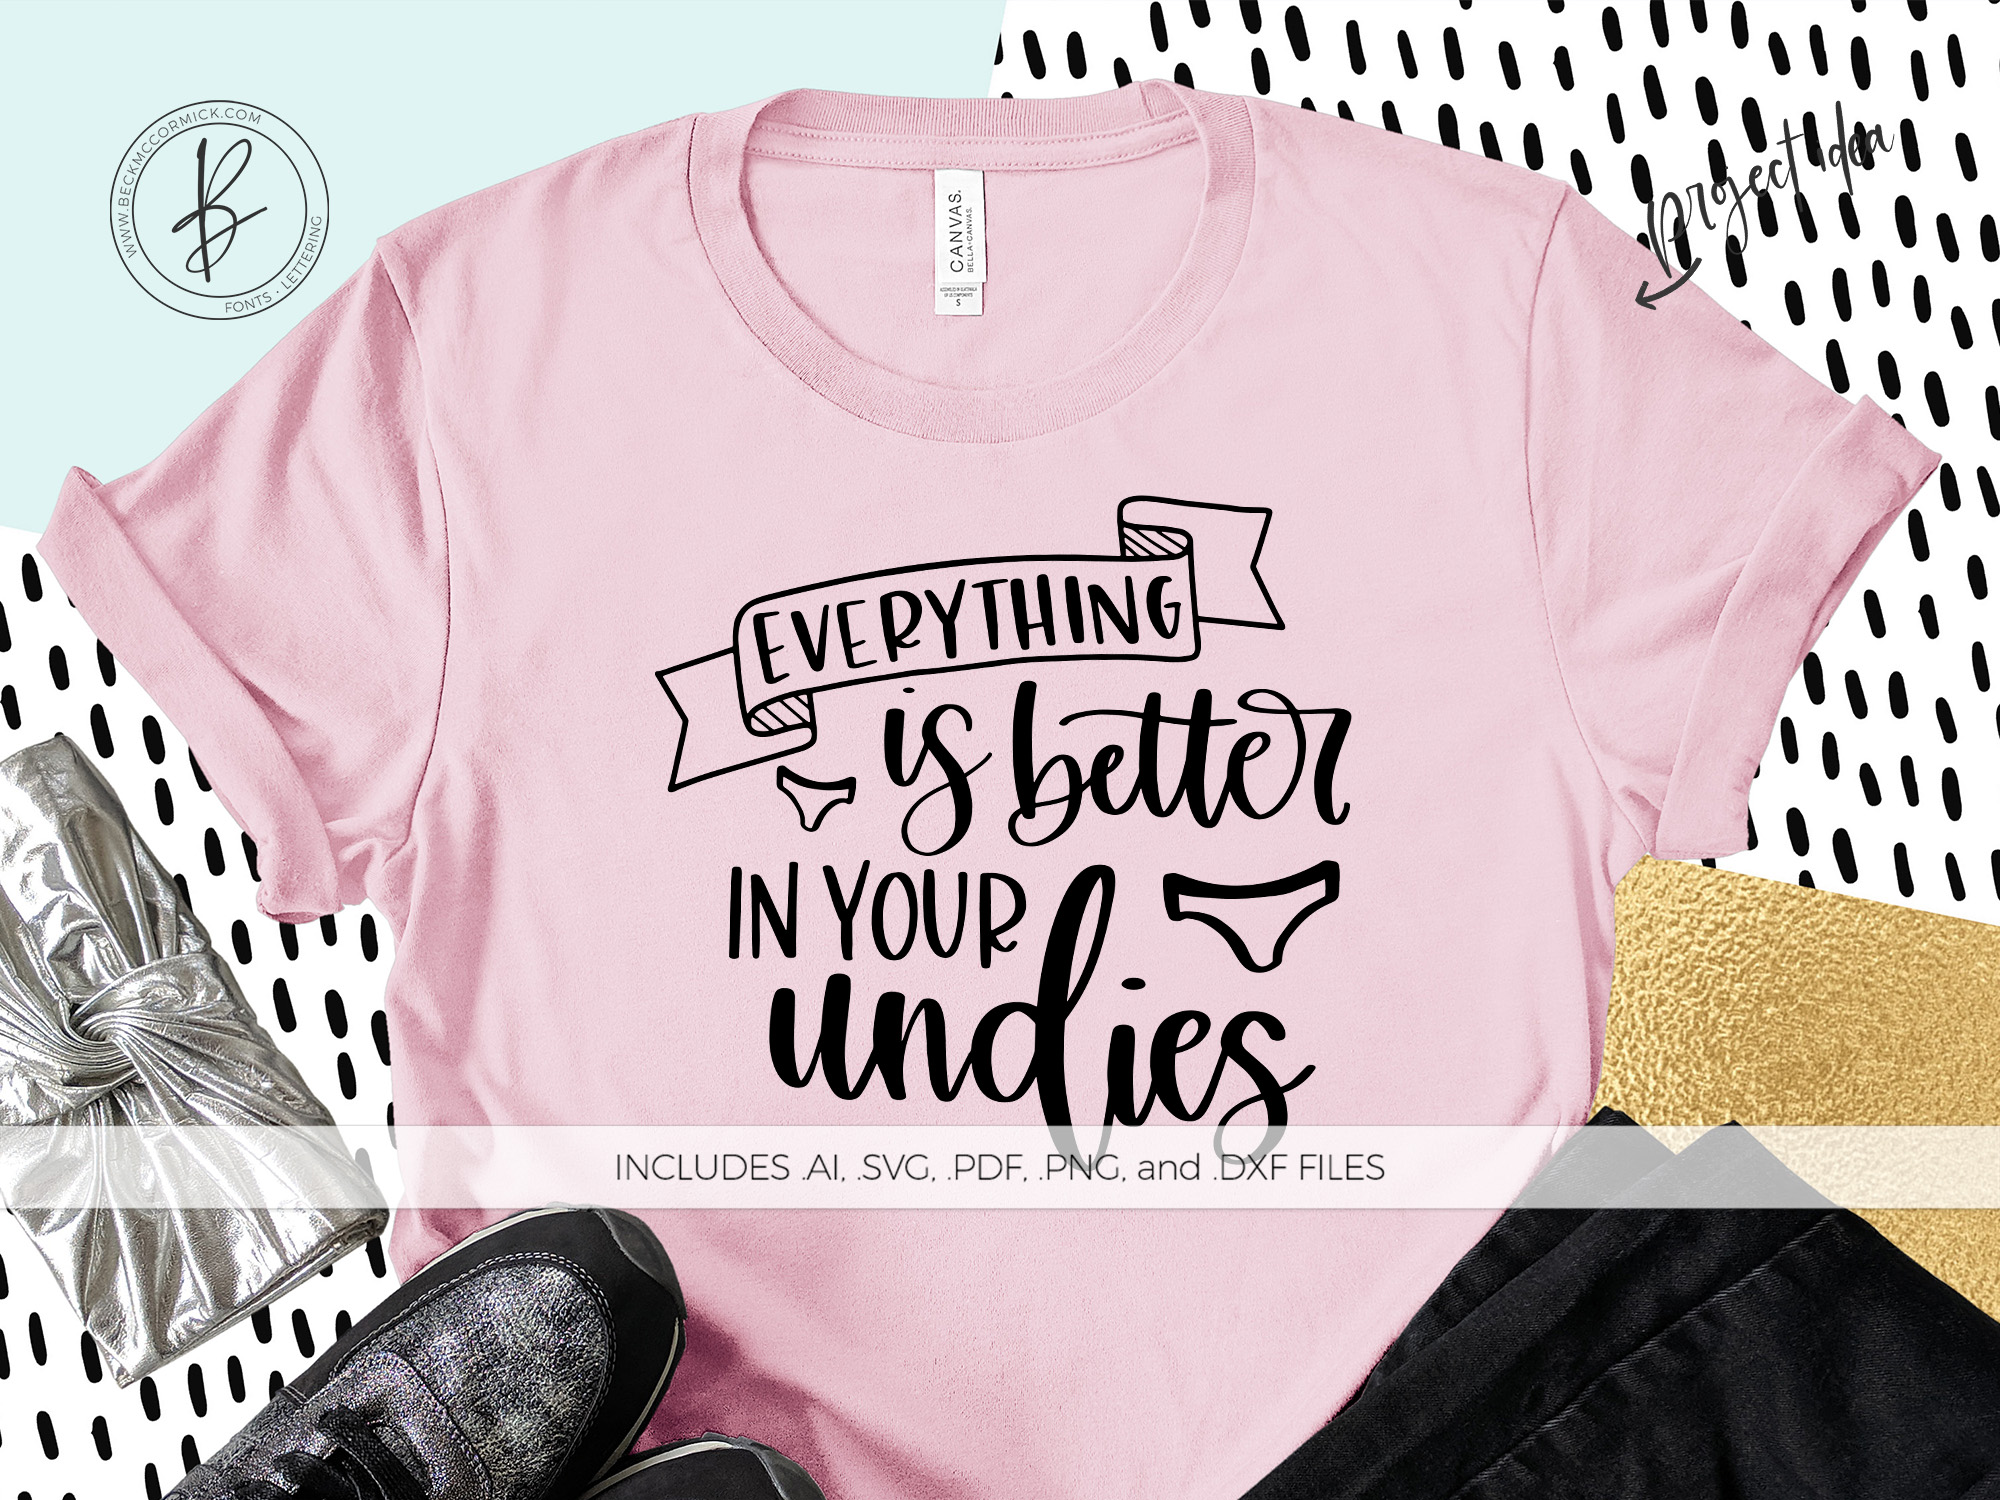 Download Free Everything Is Better In Your Undies Graphic By Beckmccormick for Cricut Explore, Silhouette and other cutting machines.